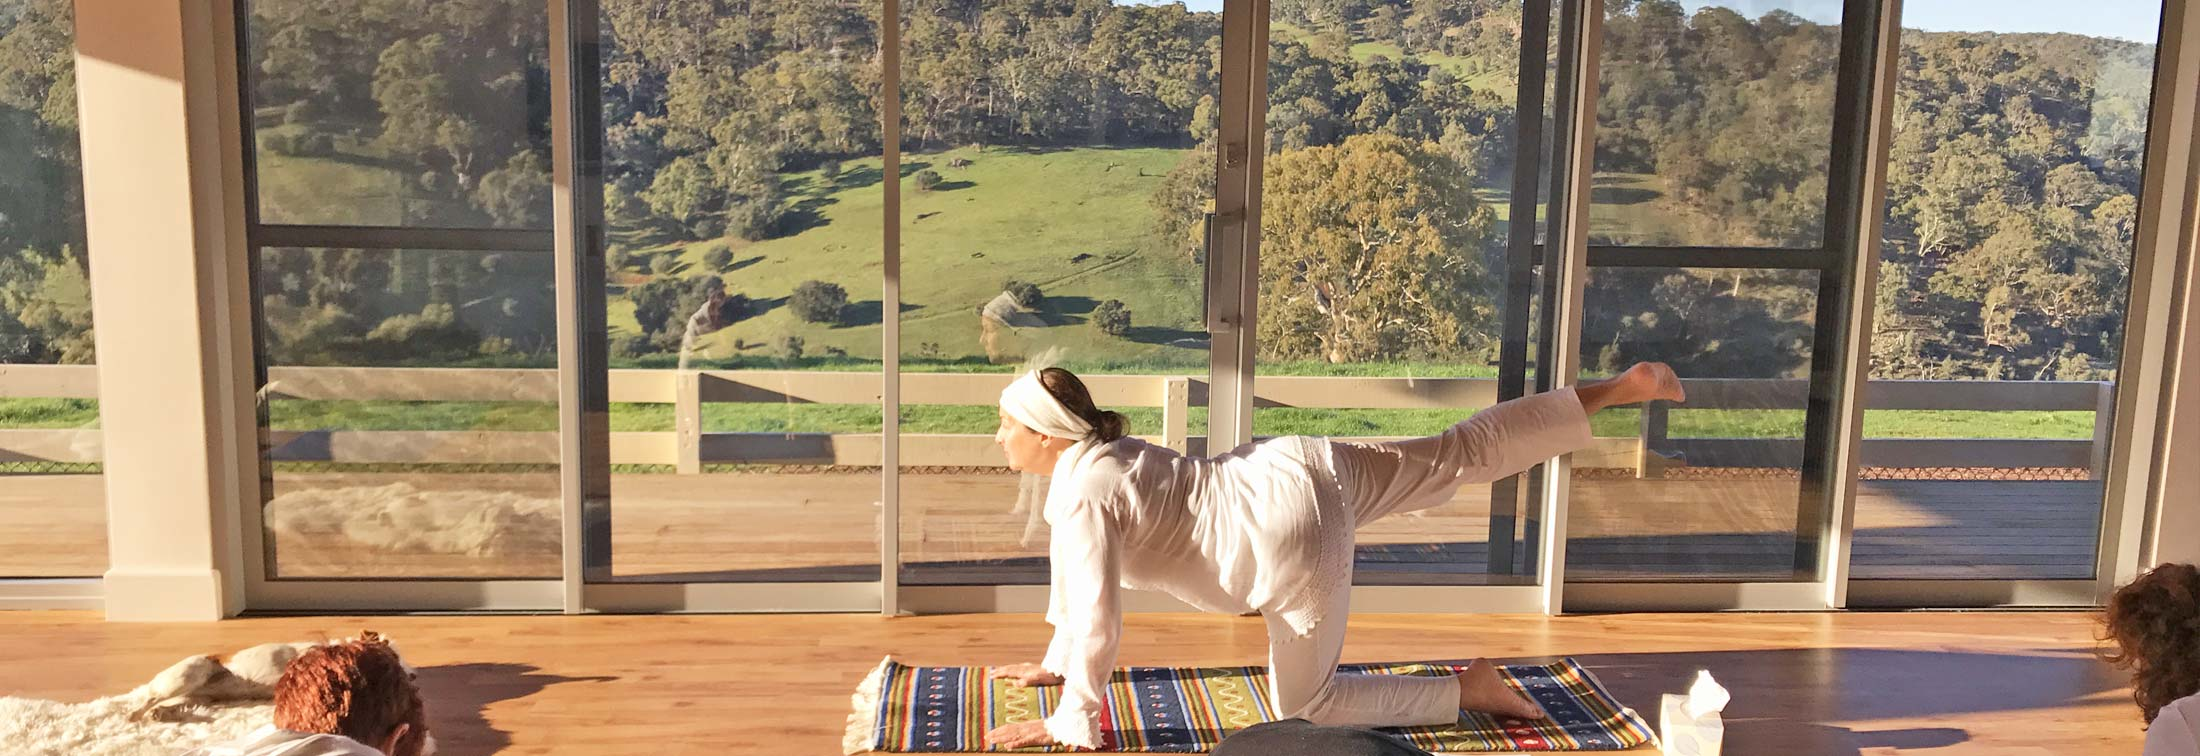 springwood art yoga studio adelaide